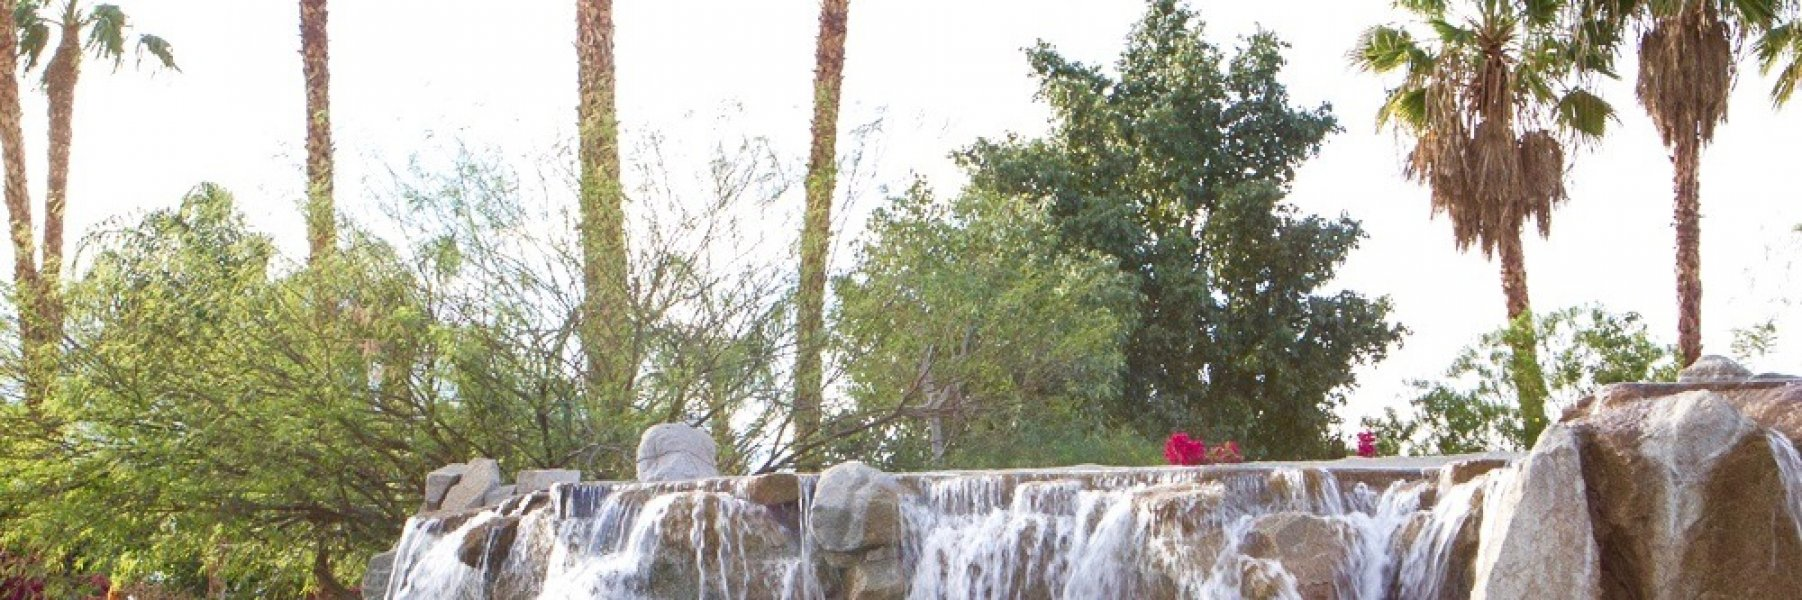 Victoria Falls is a community of homes in Rancho Mirage California